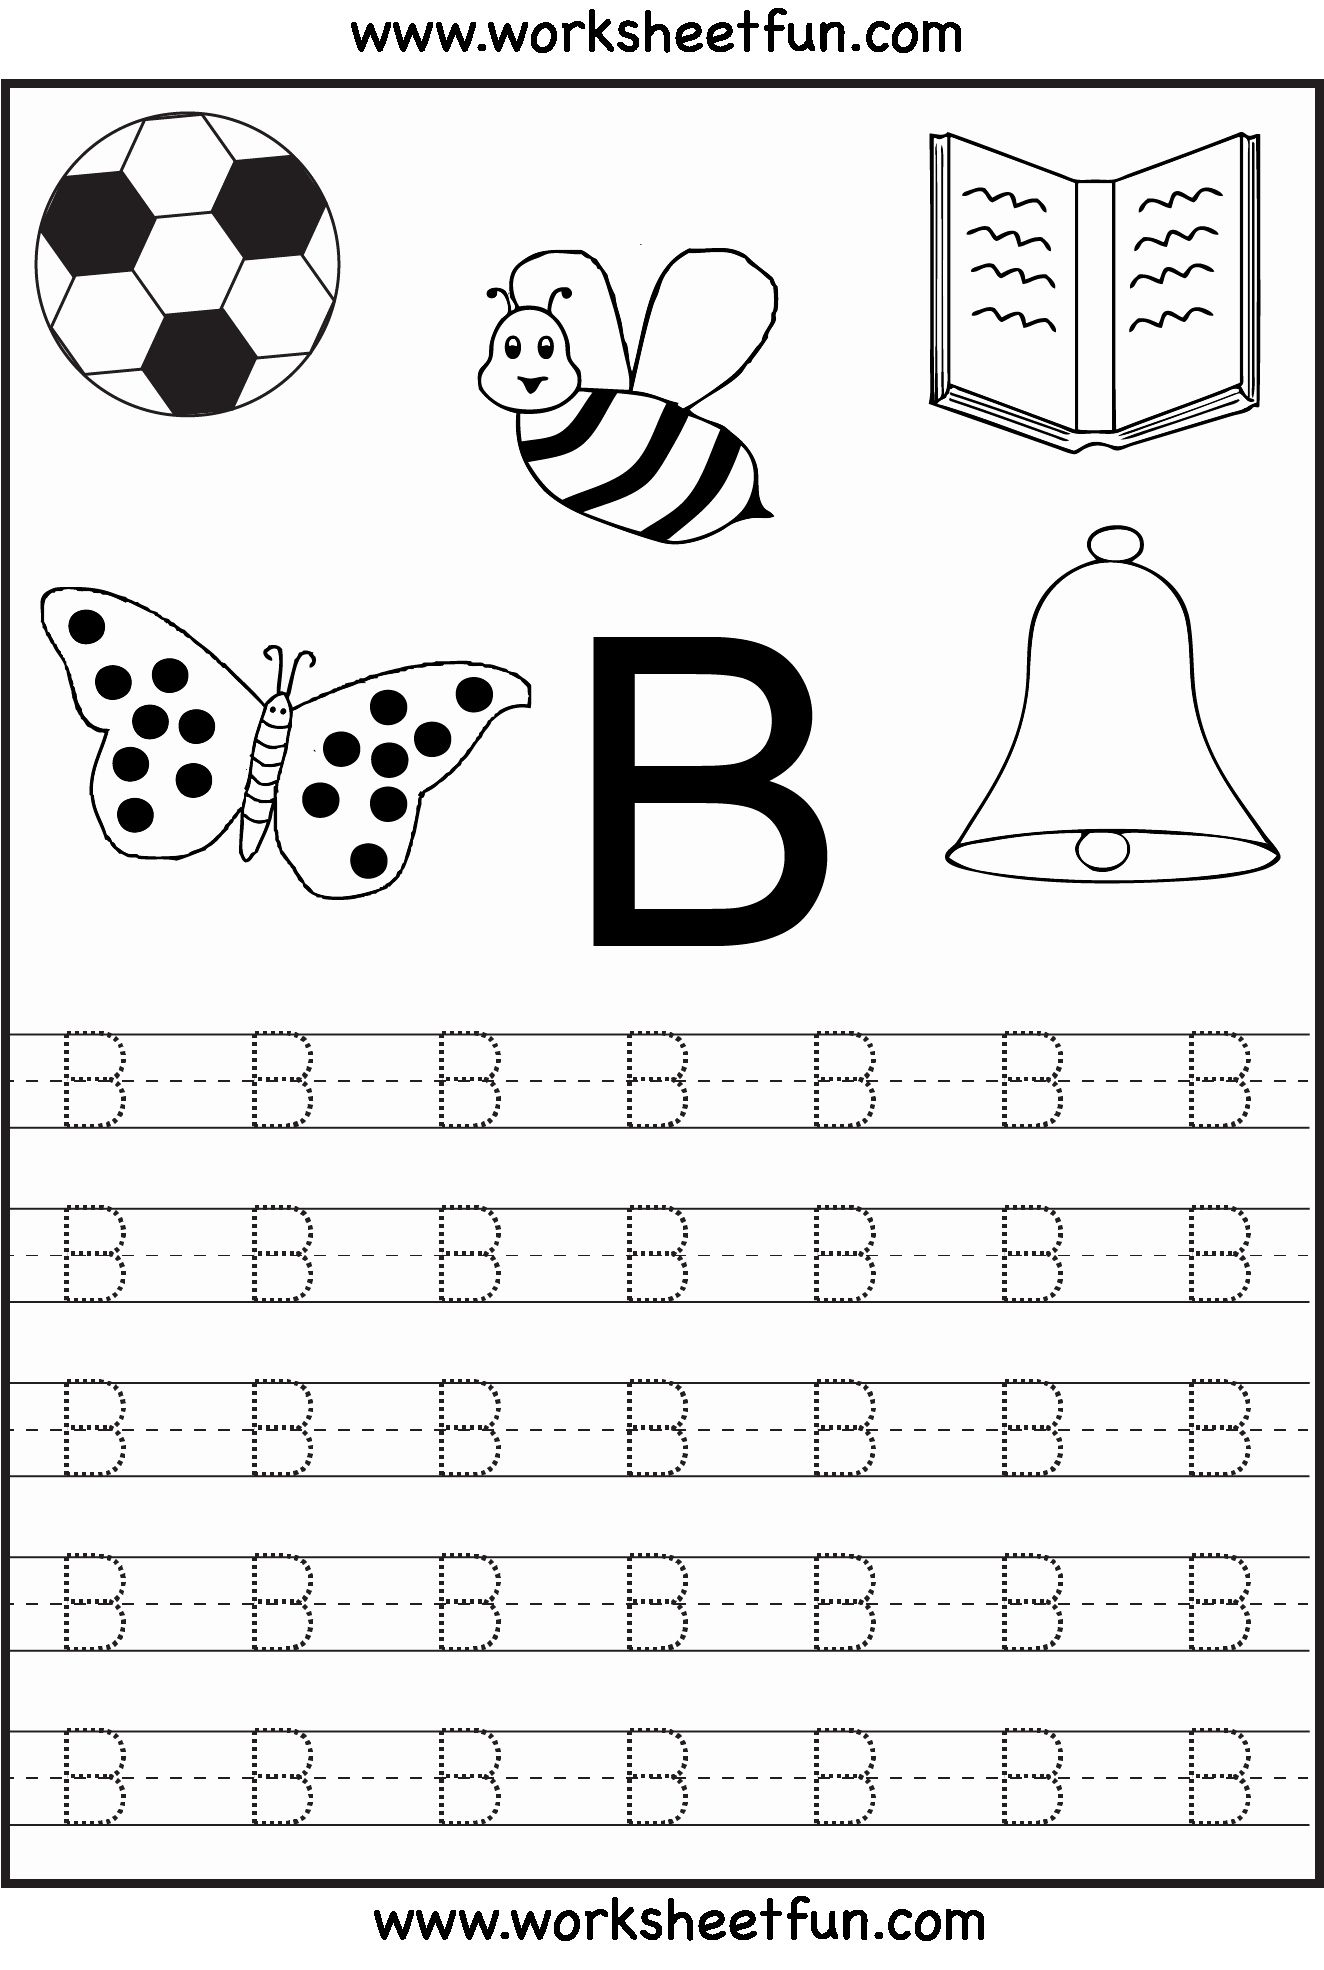 Alphabet Coloring Worksheets A Z Pdf Luxury Free Printable Letter Tracing W In 2020 Alphabet Worksheets Preschool Alphabet Tracing Worksheets Letter Tracing Worksheets